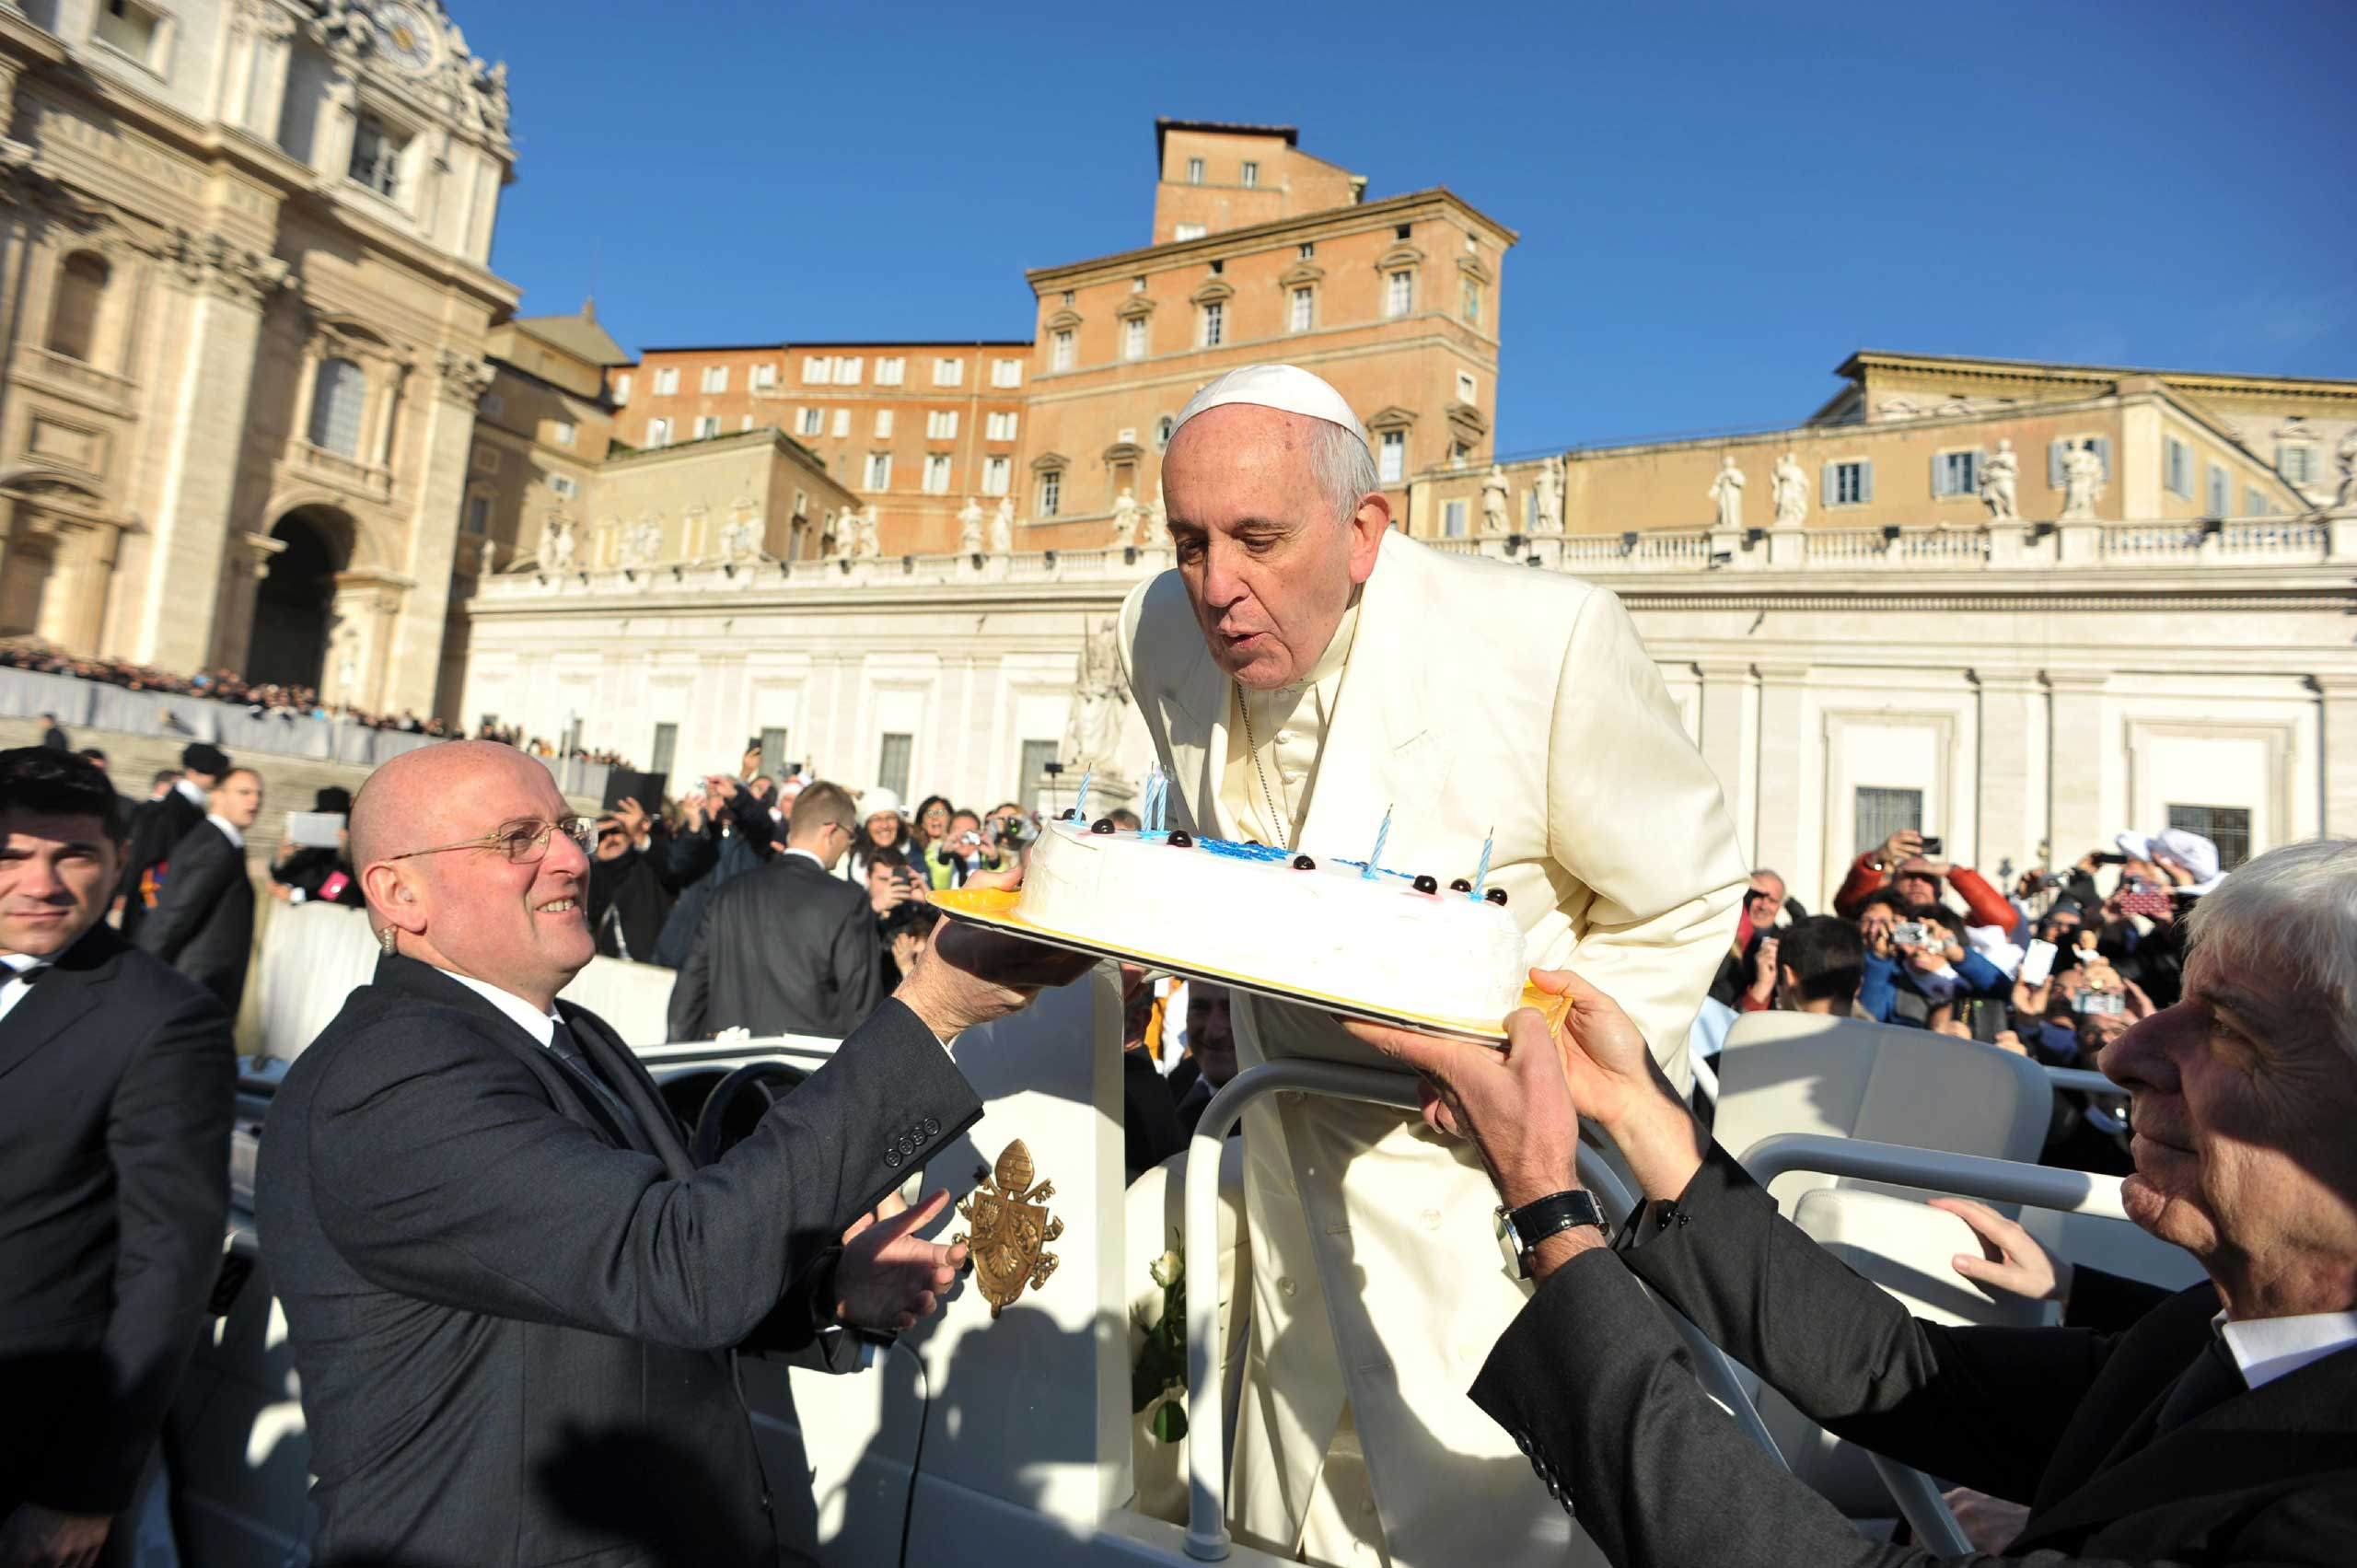 Pope Francis blows out the candles of a birthday cake to celebrate his 78th birthday during a general audience at the Vatican on Dec. 17, 2014.